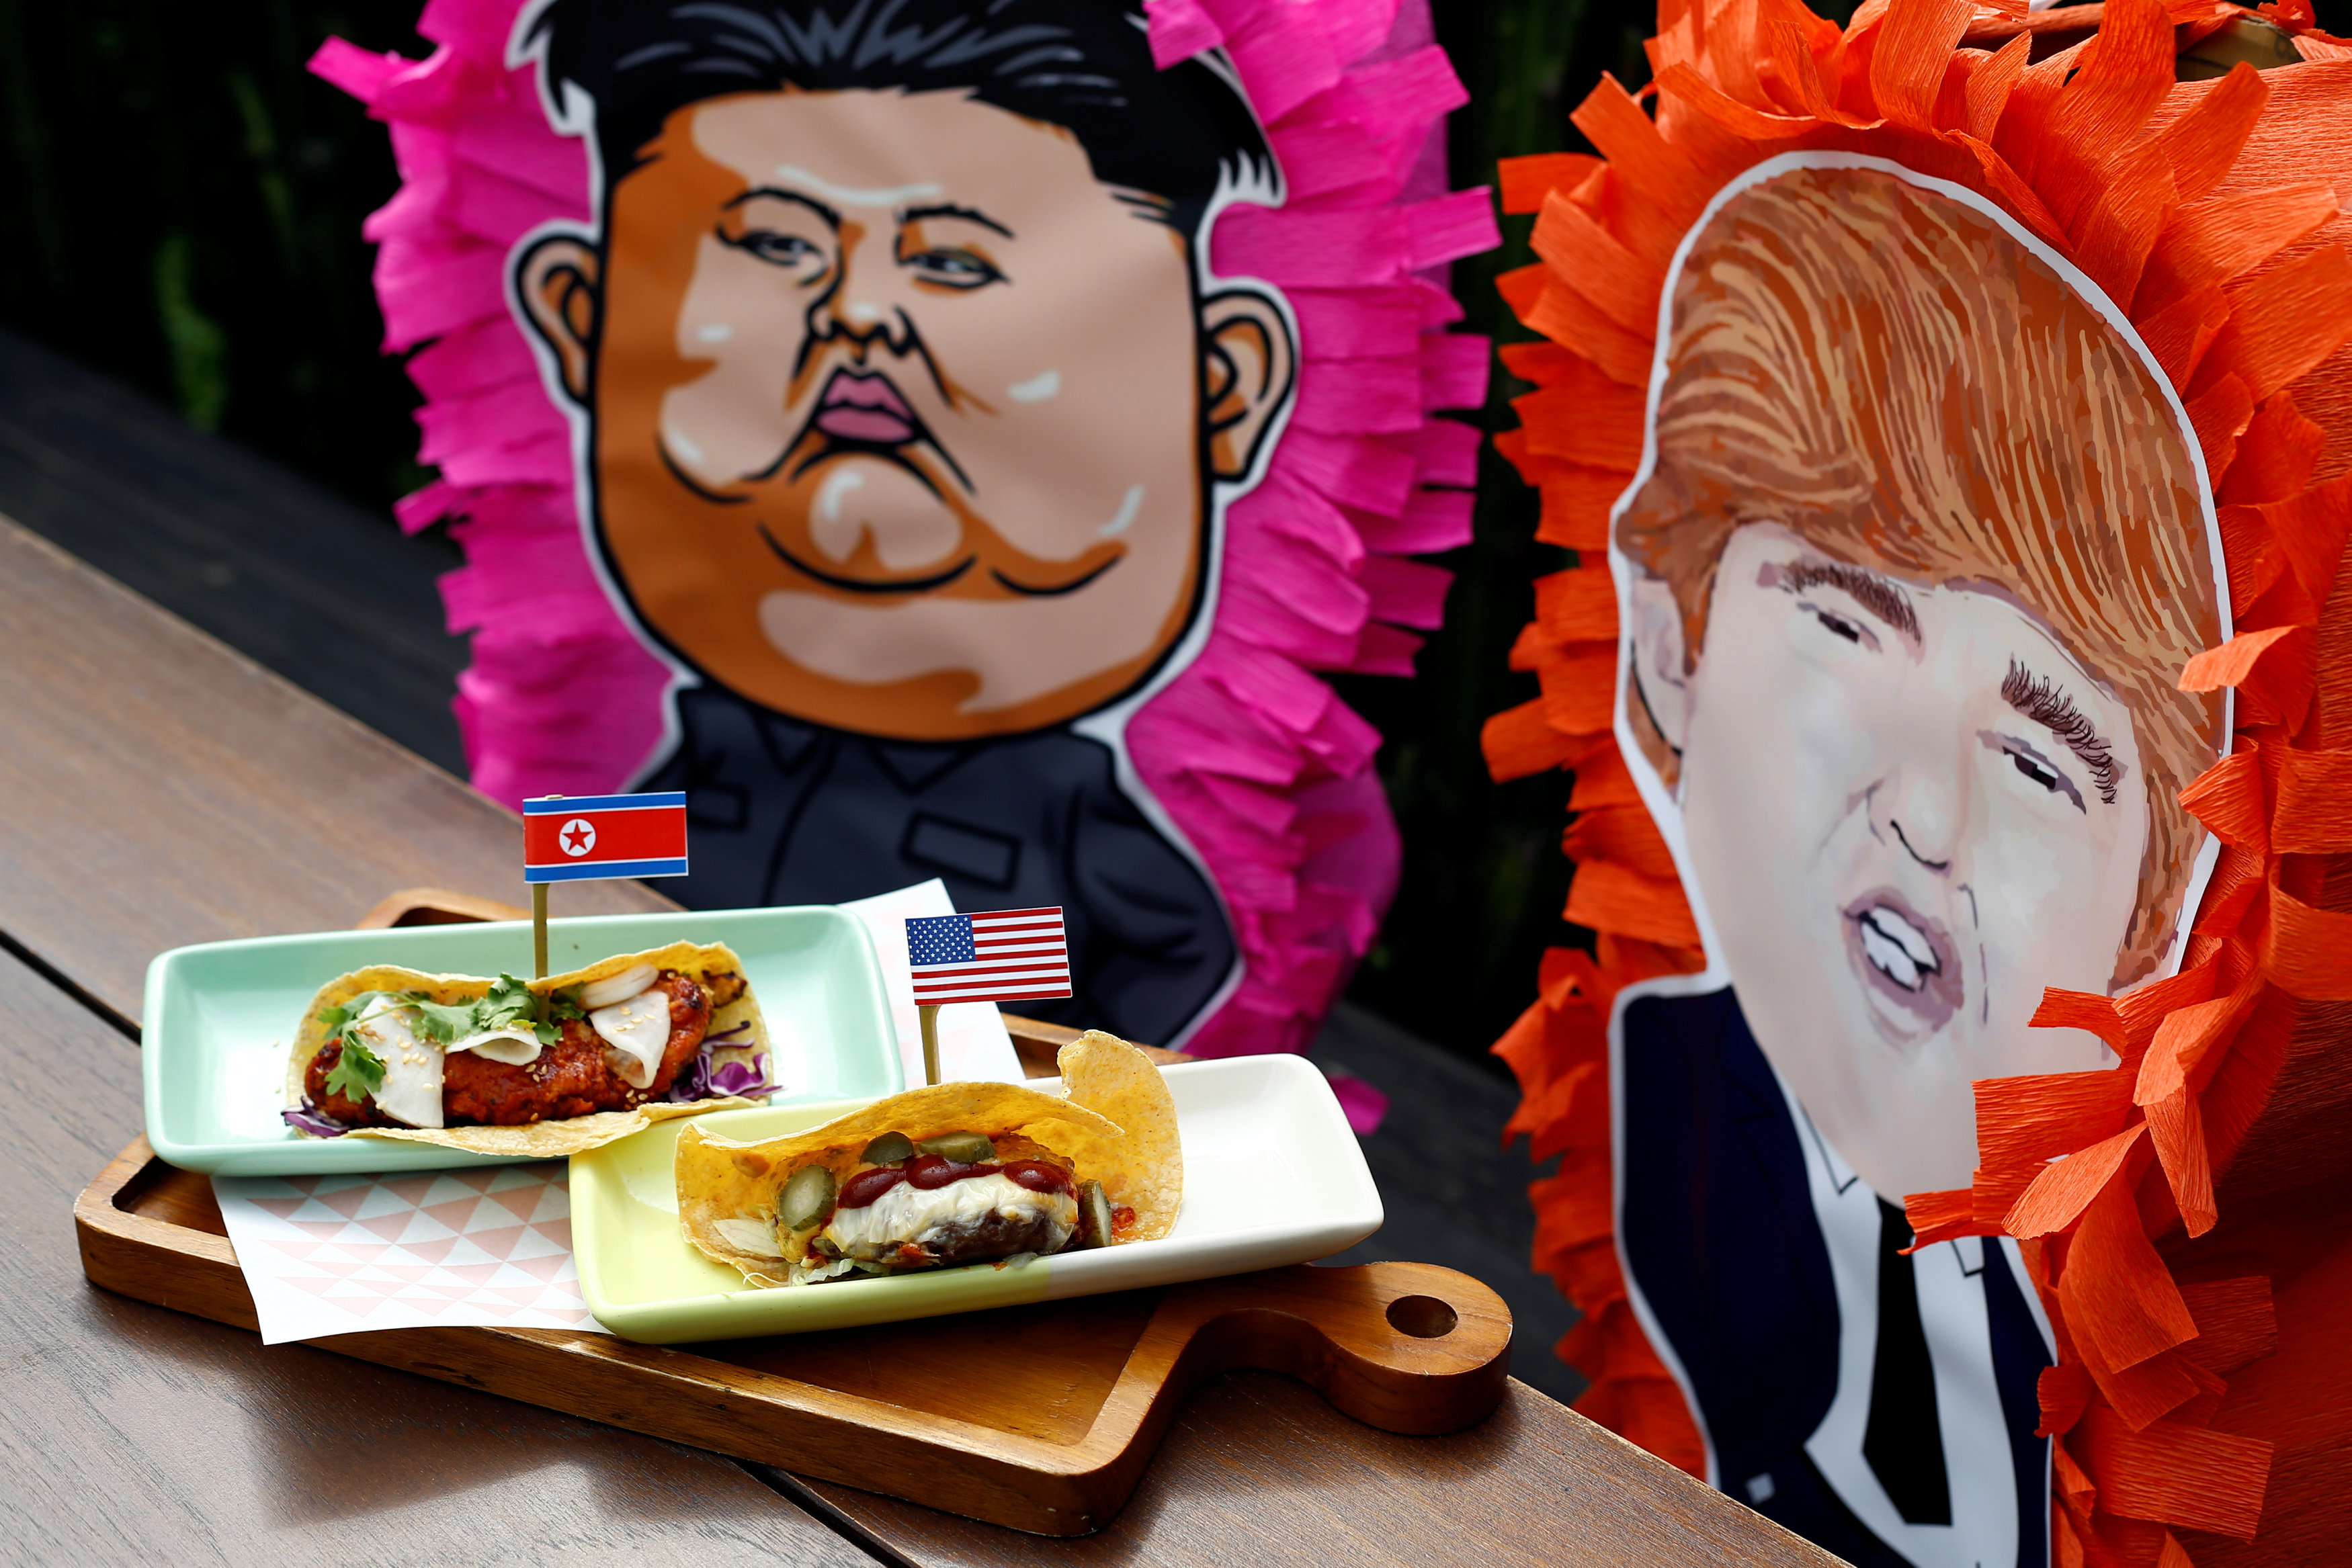 The Rocket Man Taco and the El Trumpo Taco is pictured at Lucha Loco in Singapore June 8, 2018. REUTERS/Feline Lim